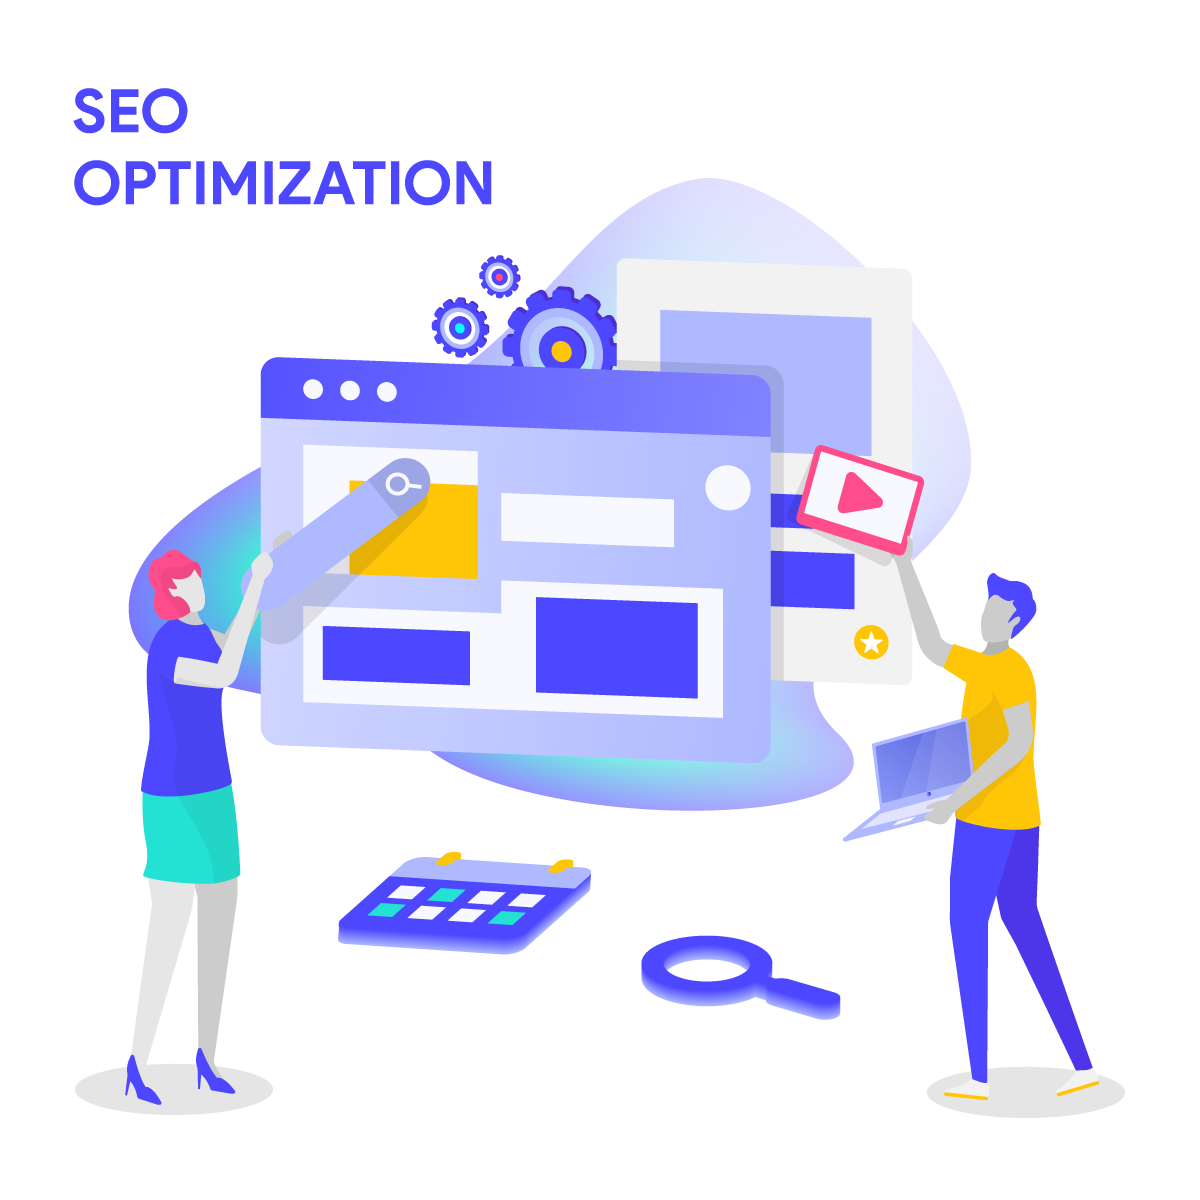 How To Improve Organic Search Results With Effective SEO?